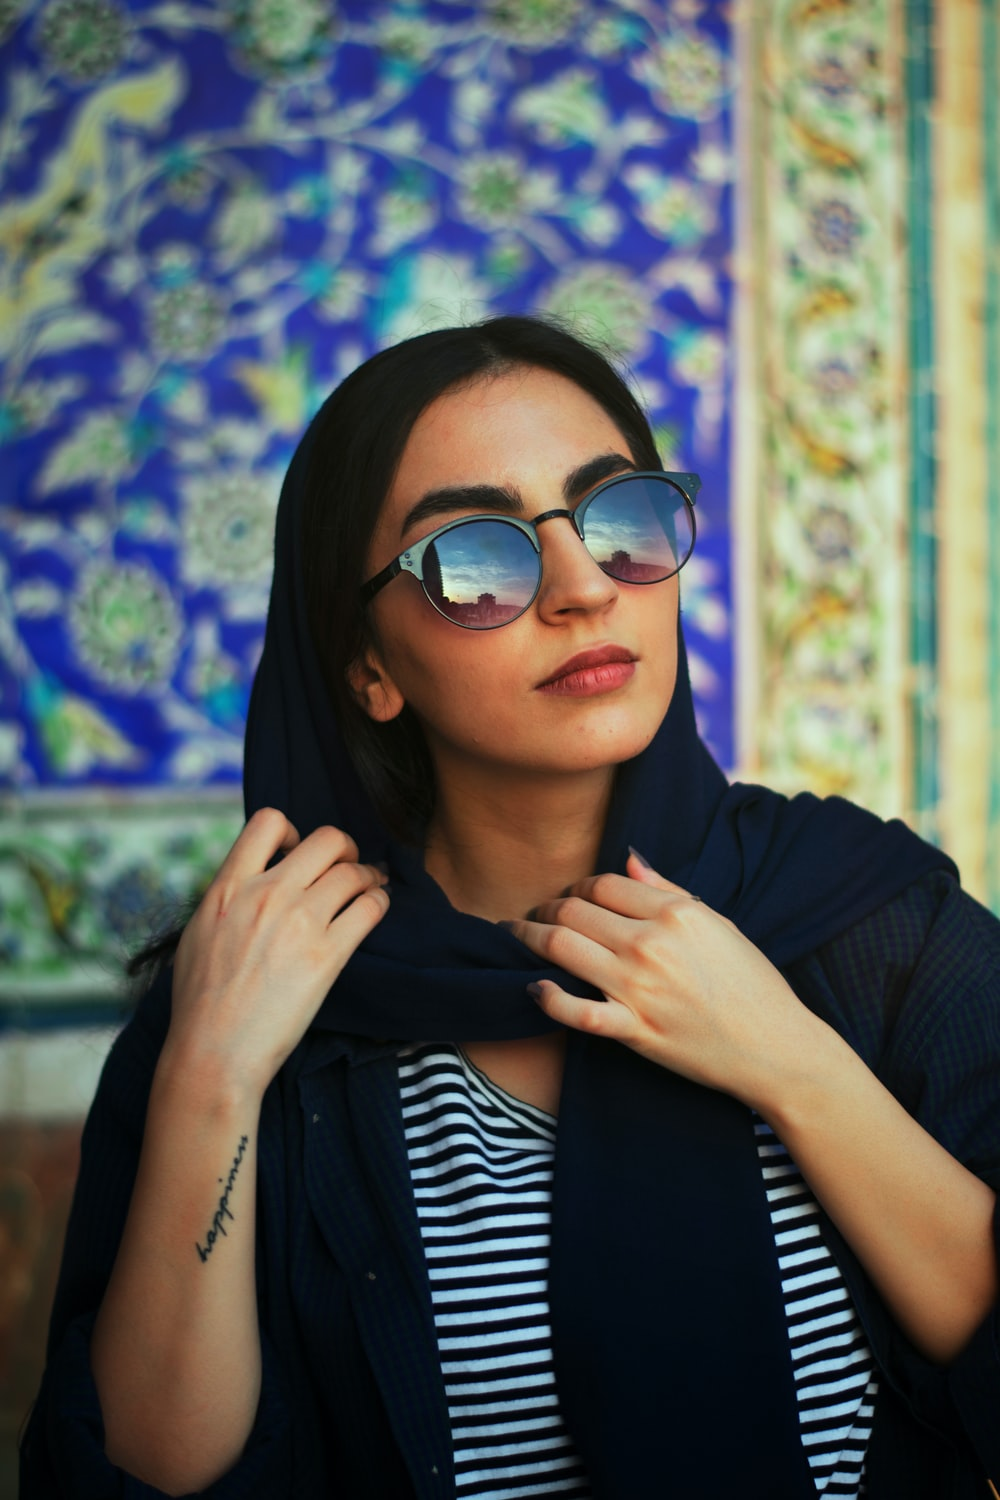 woman in black and white striped long sleeve shirt wearing black framed sunglasses